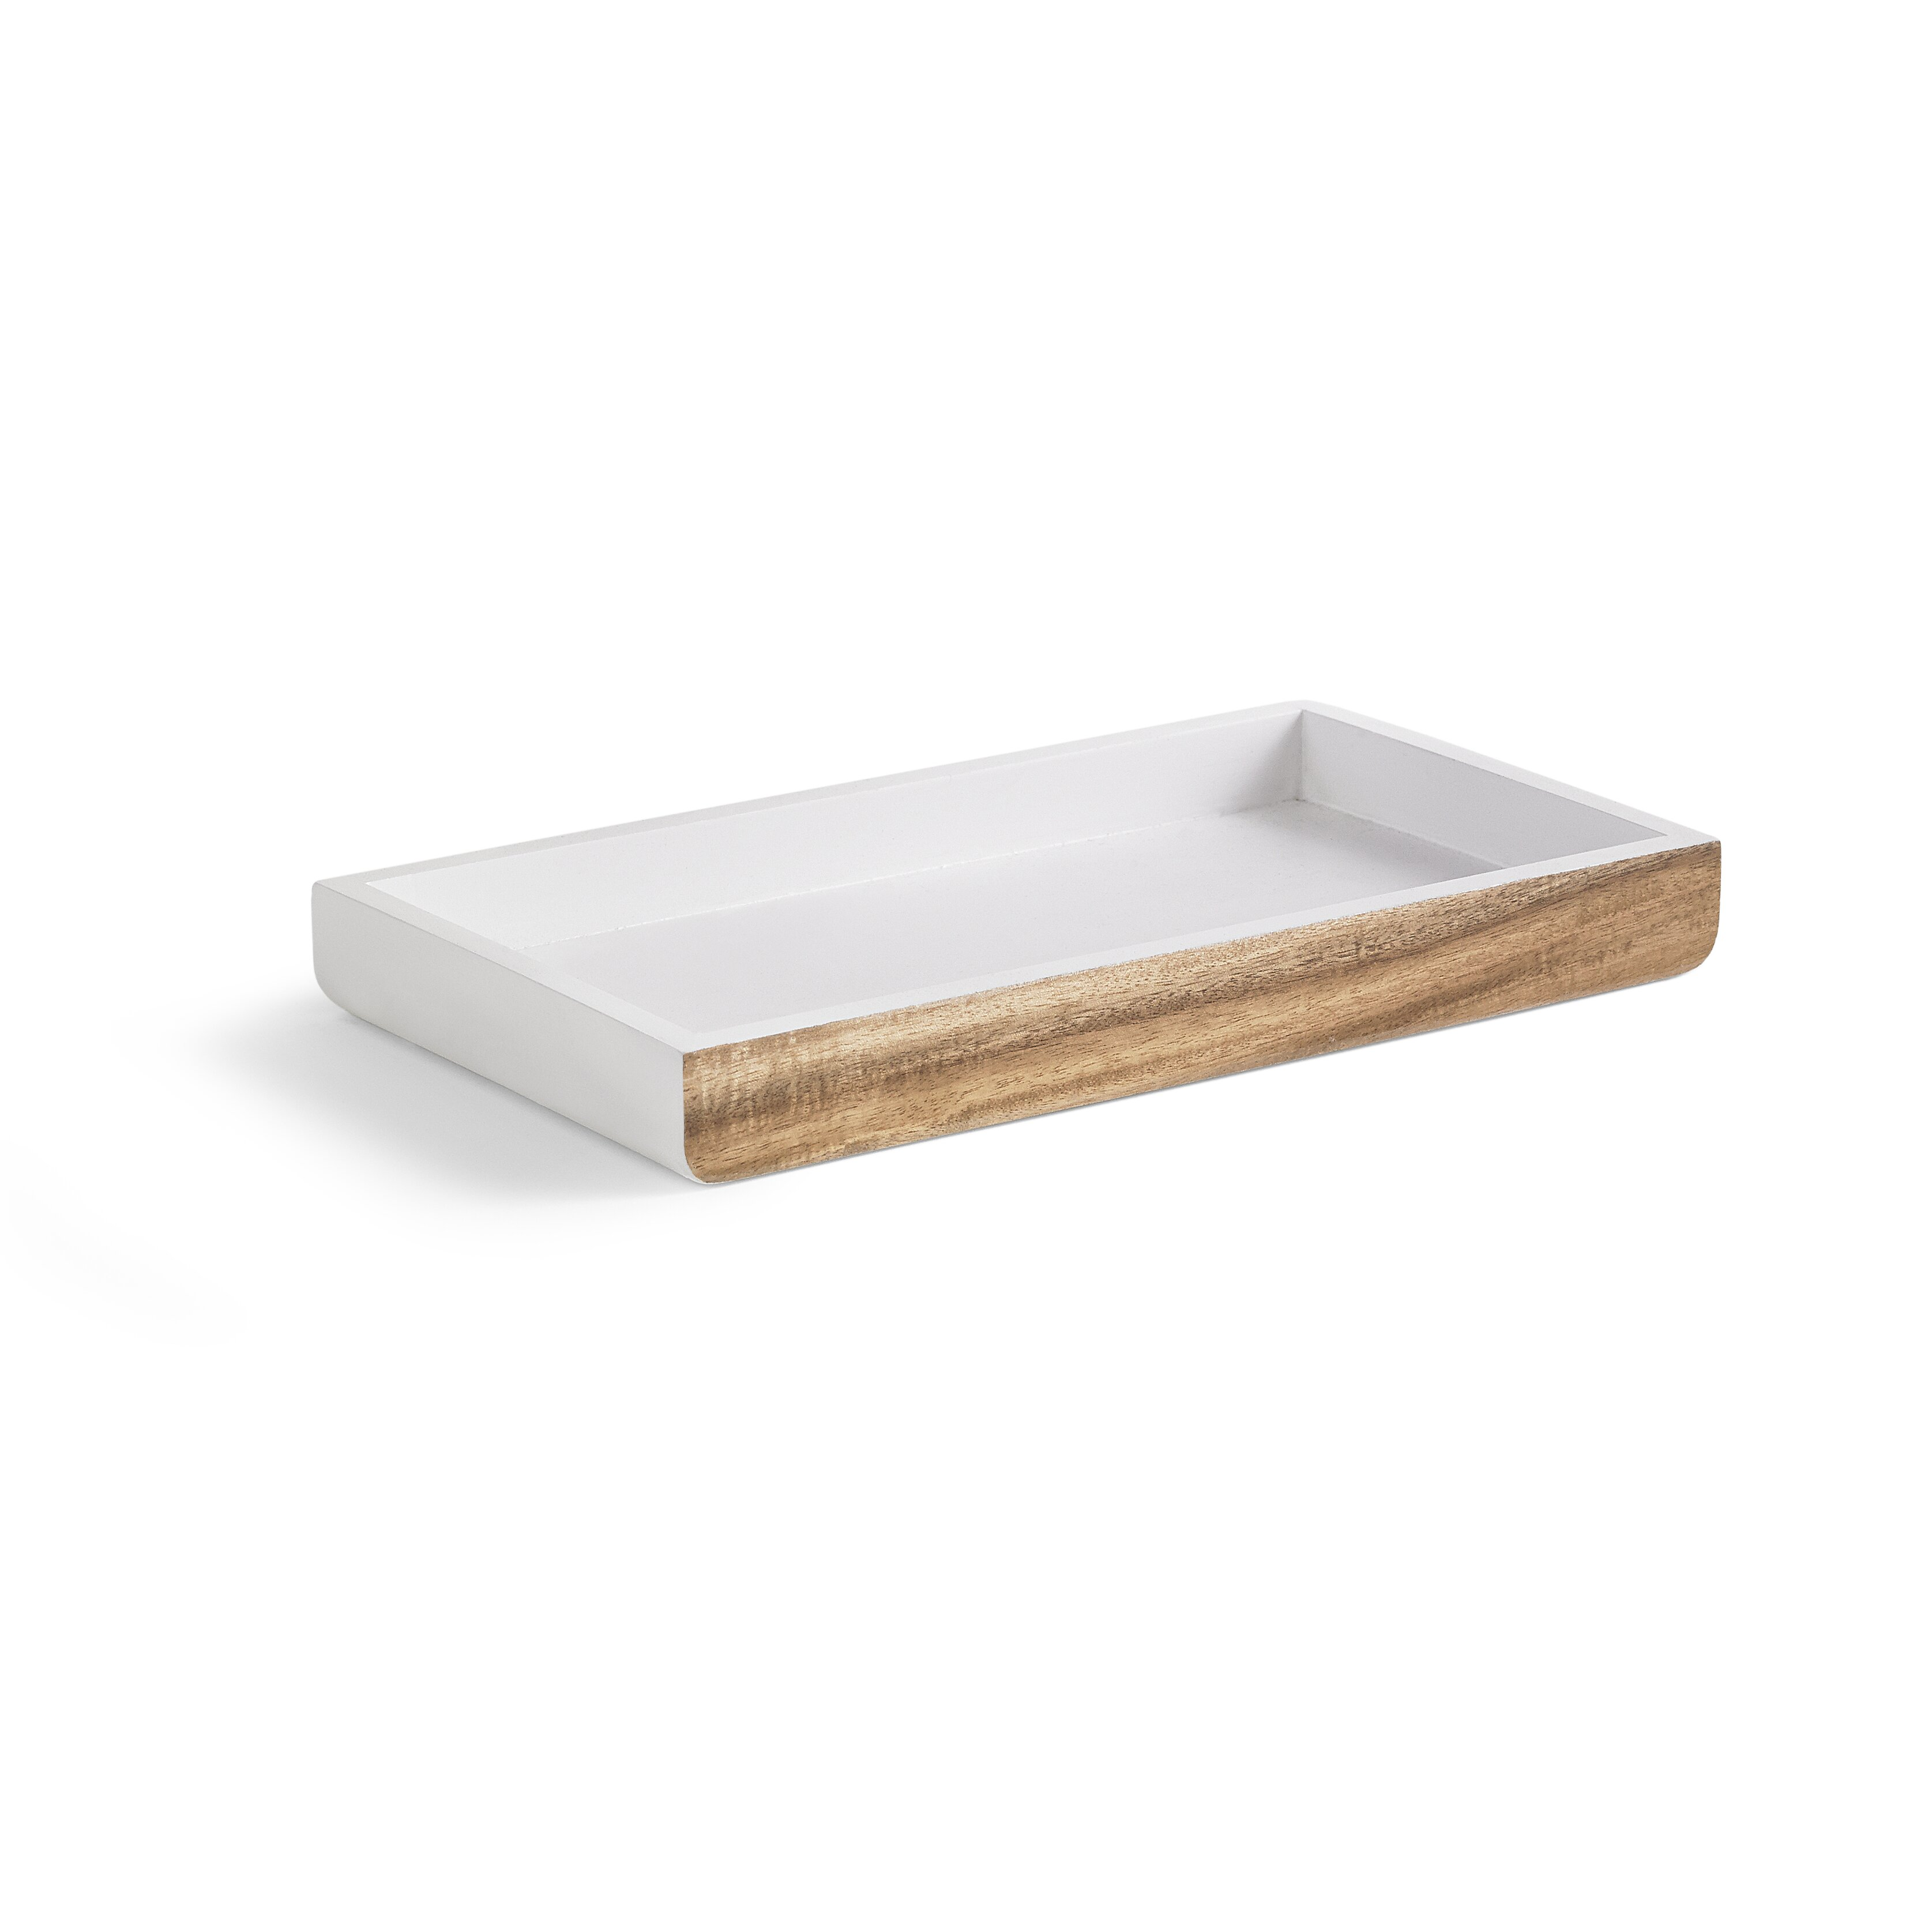 Kassatex habitat bathroom accessory tray wayfair for Bathroom tray